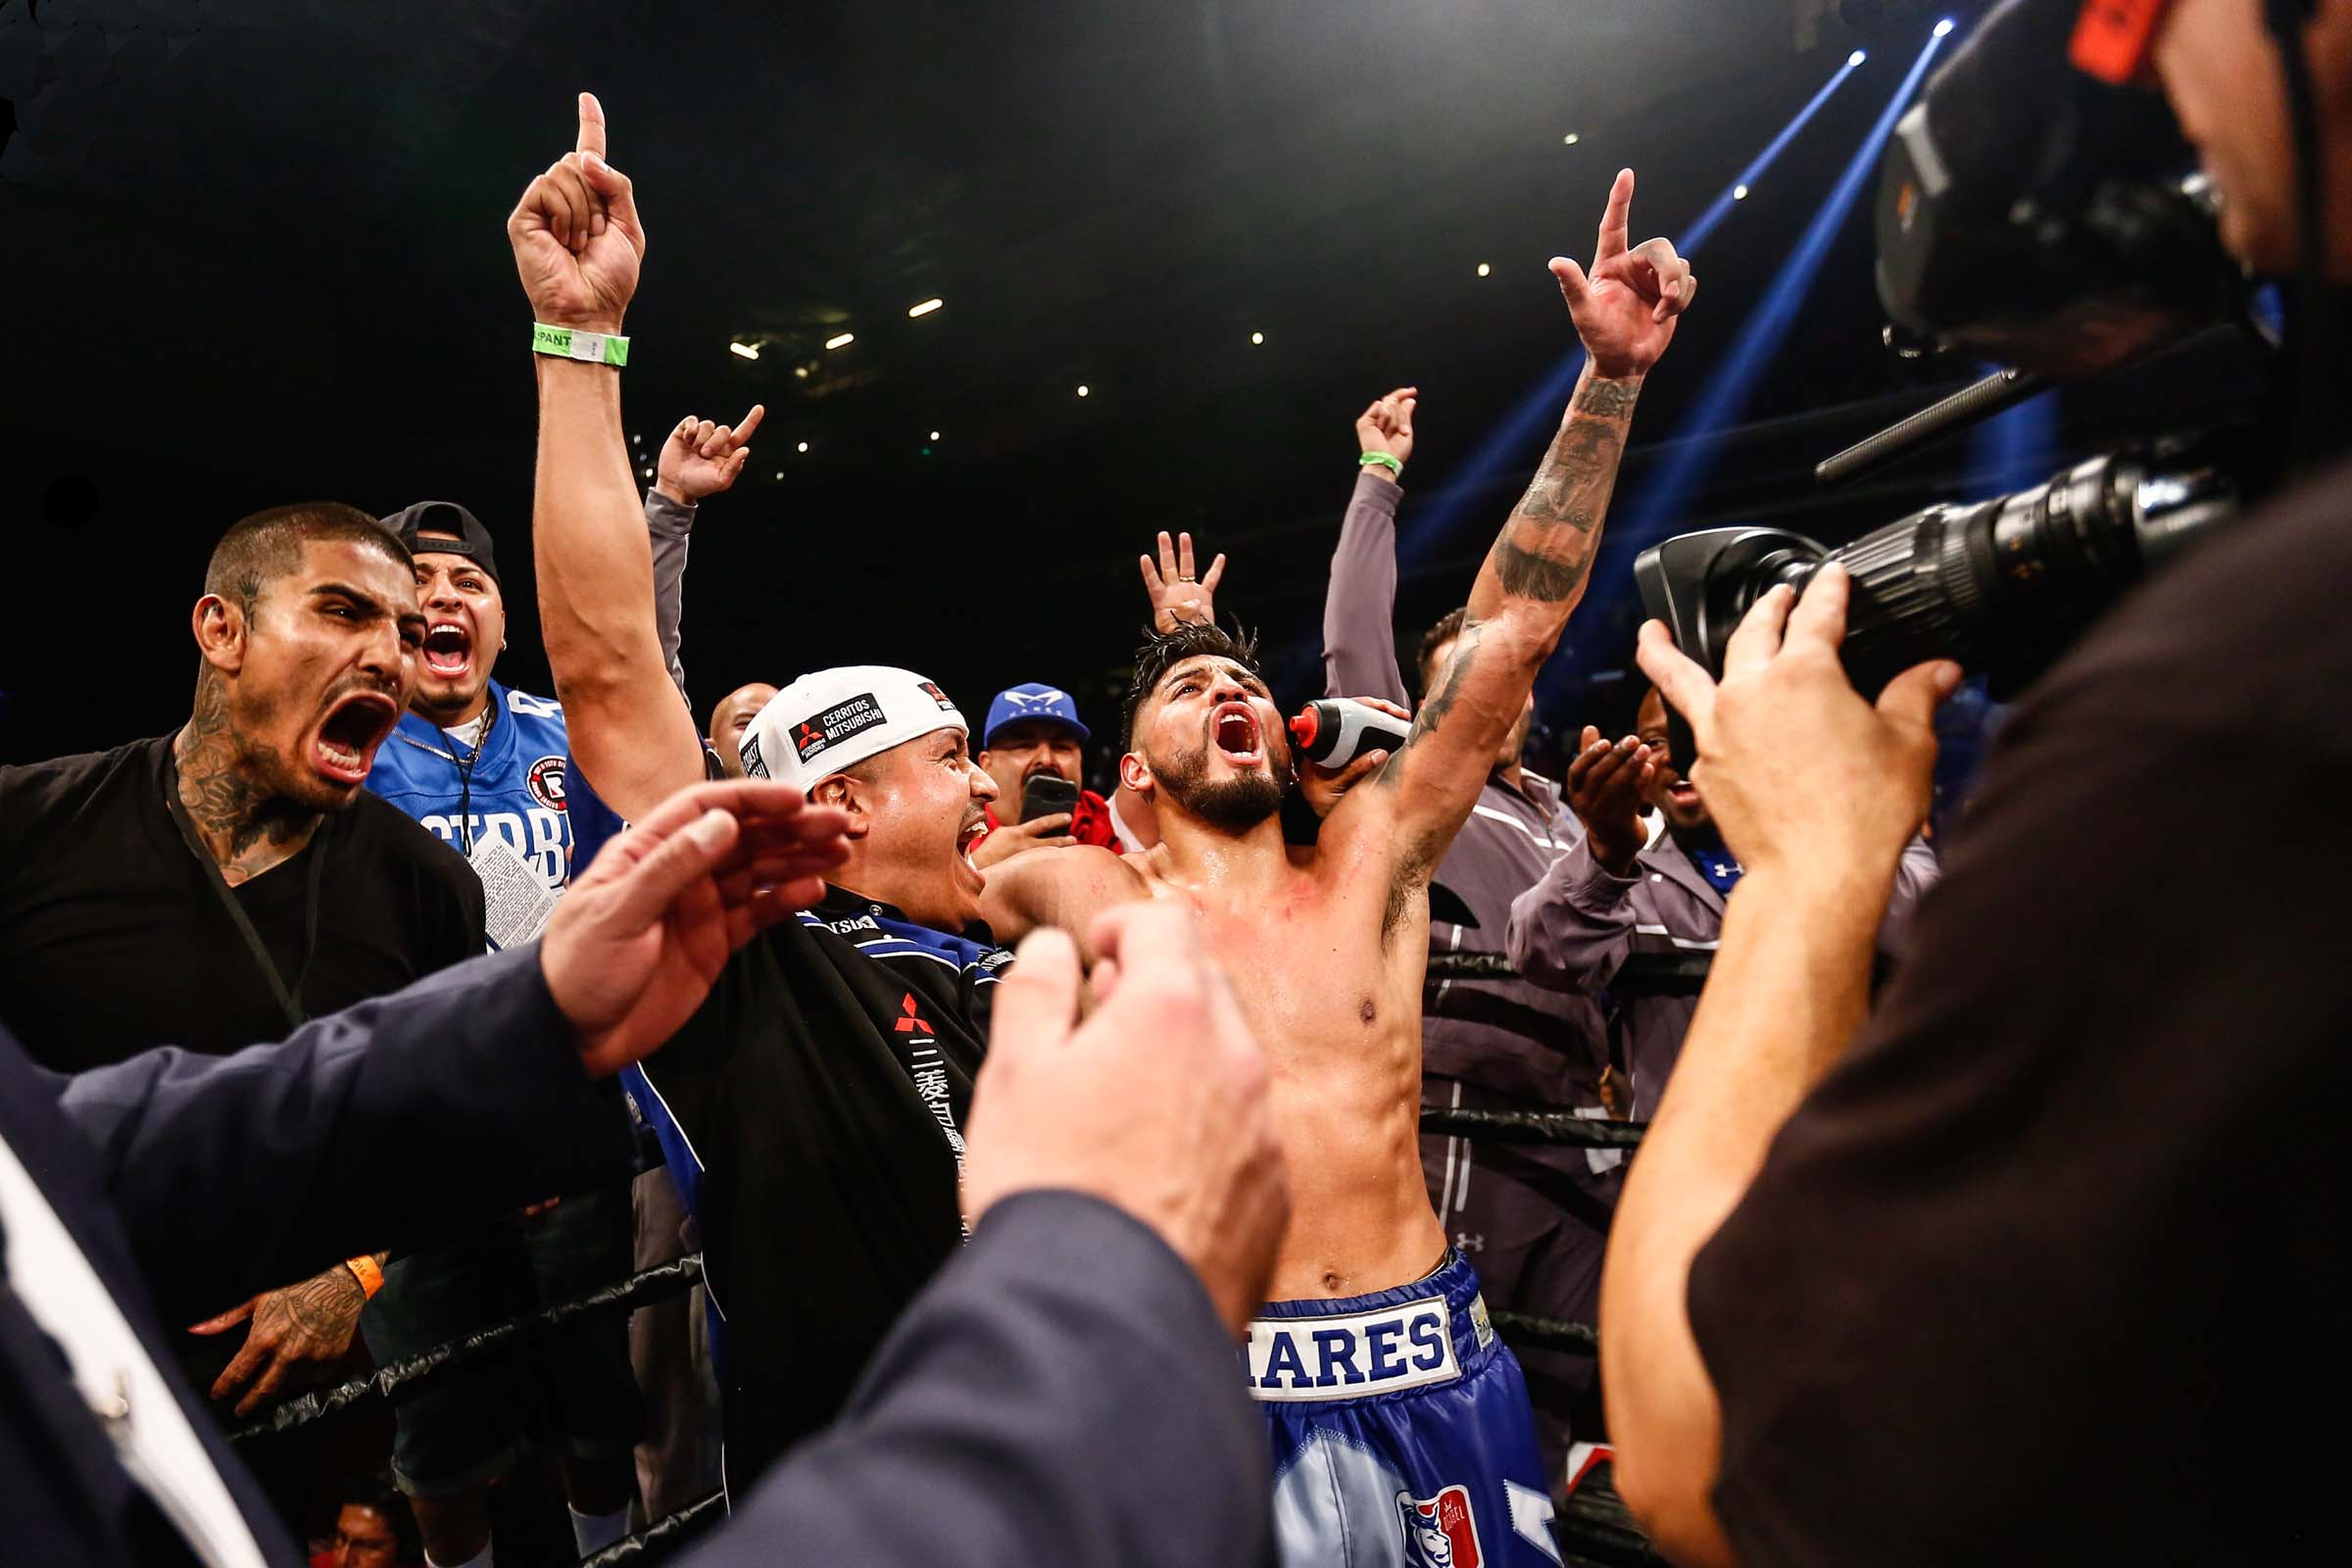 Mares Decisions Cuellar to Win Featherweight Crown